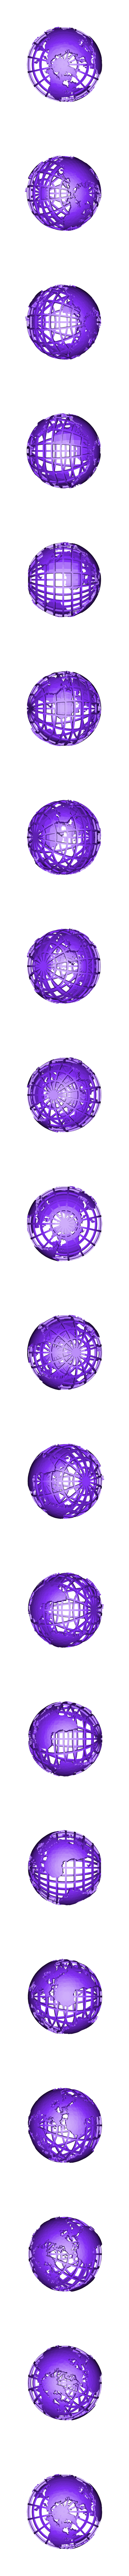 Grided_globe.stl Download free STL file Gridded Globe • 3D printing template, wally3Dprinter